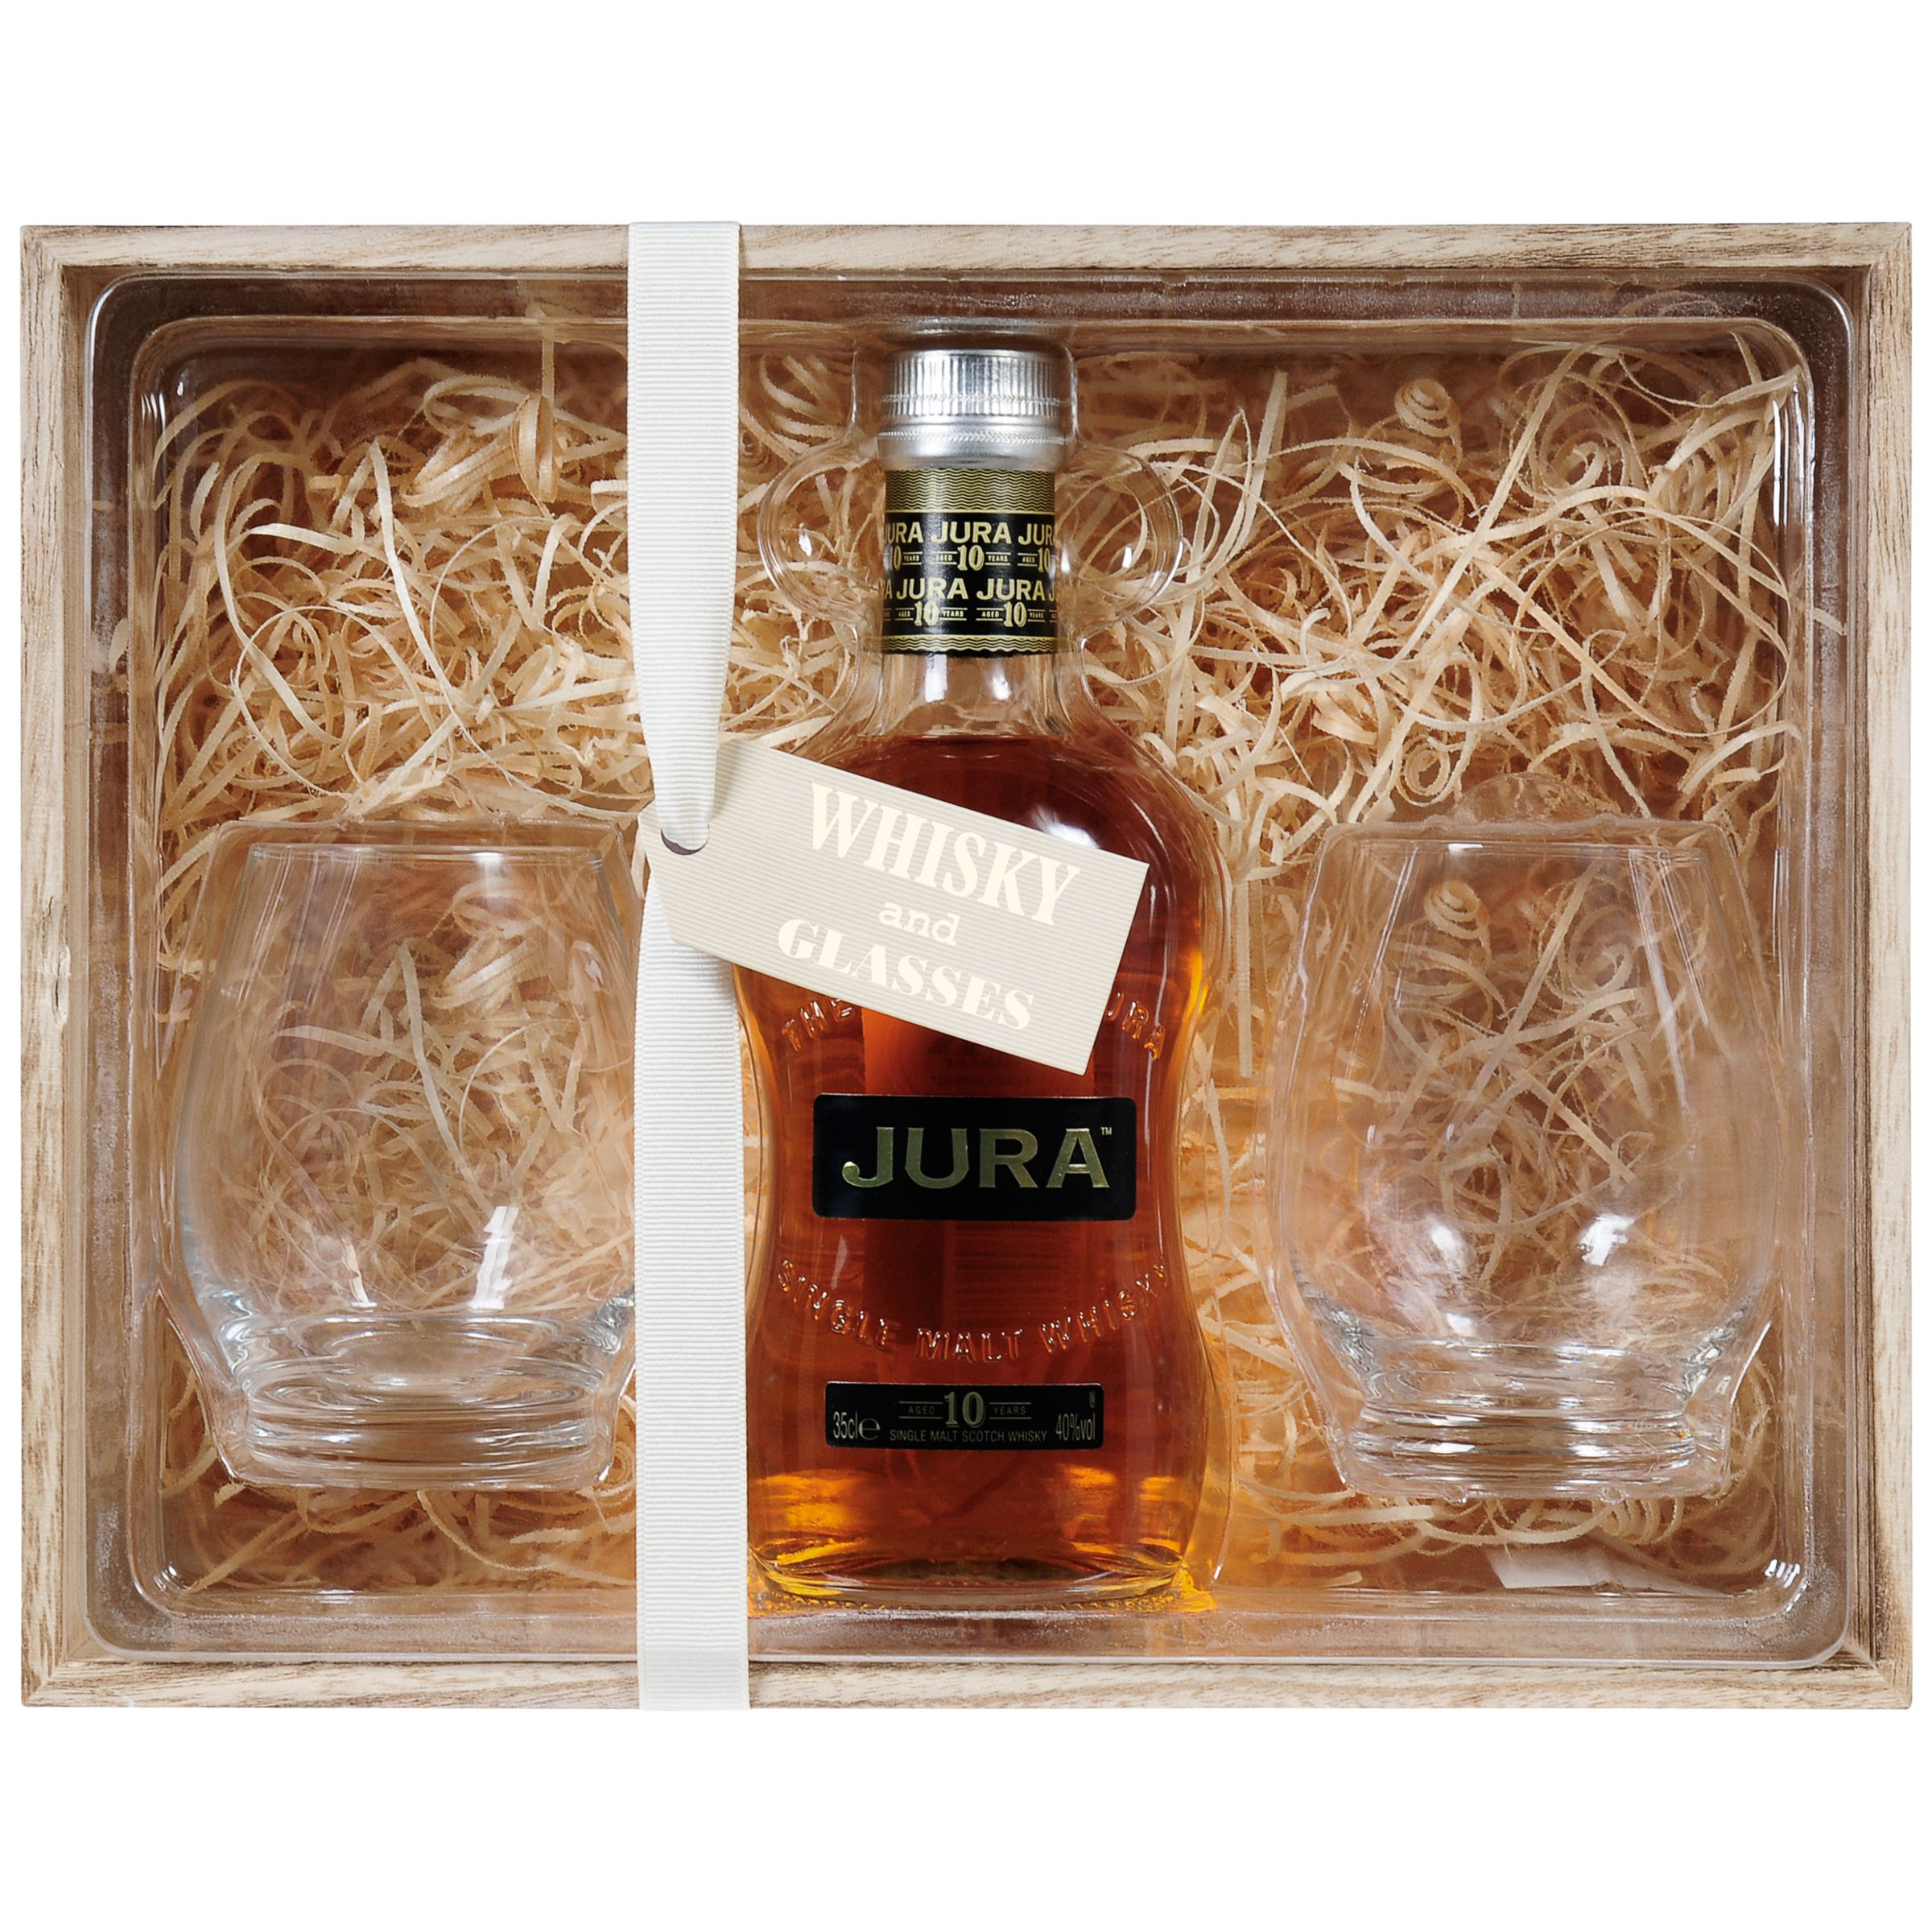 Buy Cheap Jura Whisky Compare Alcoholic Drinks Prices